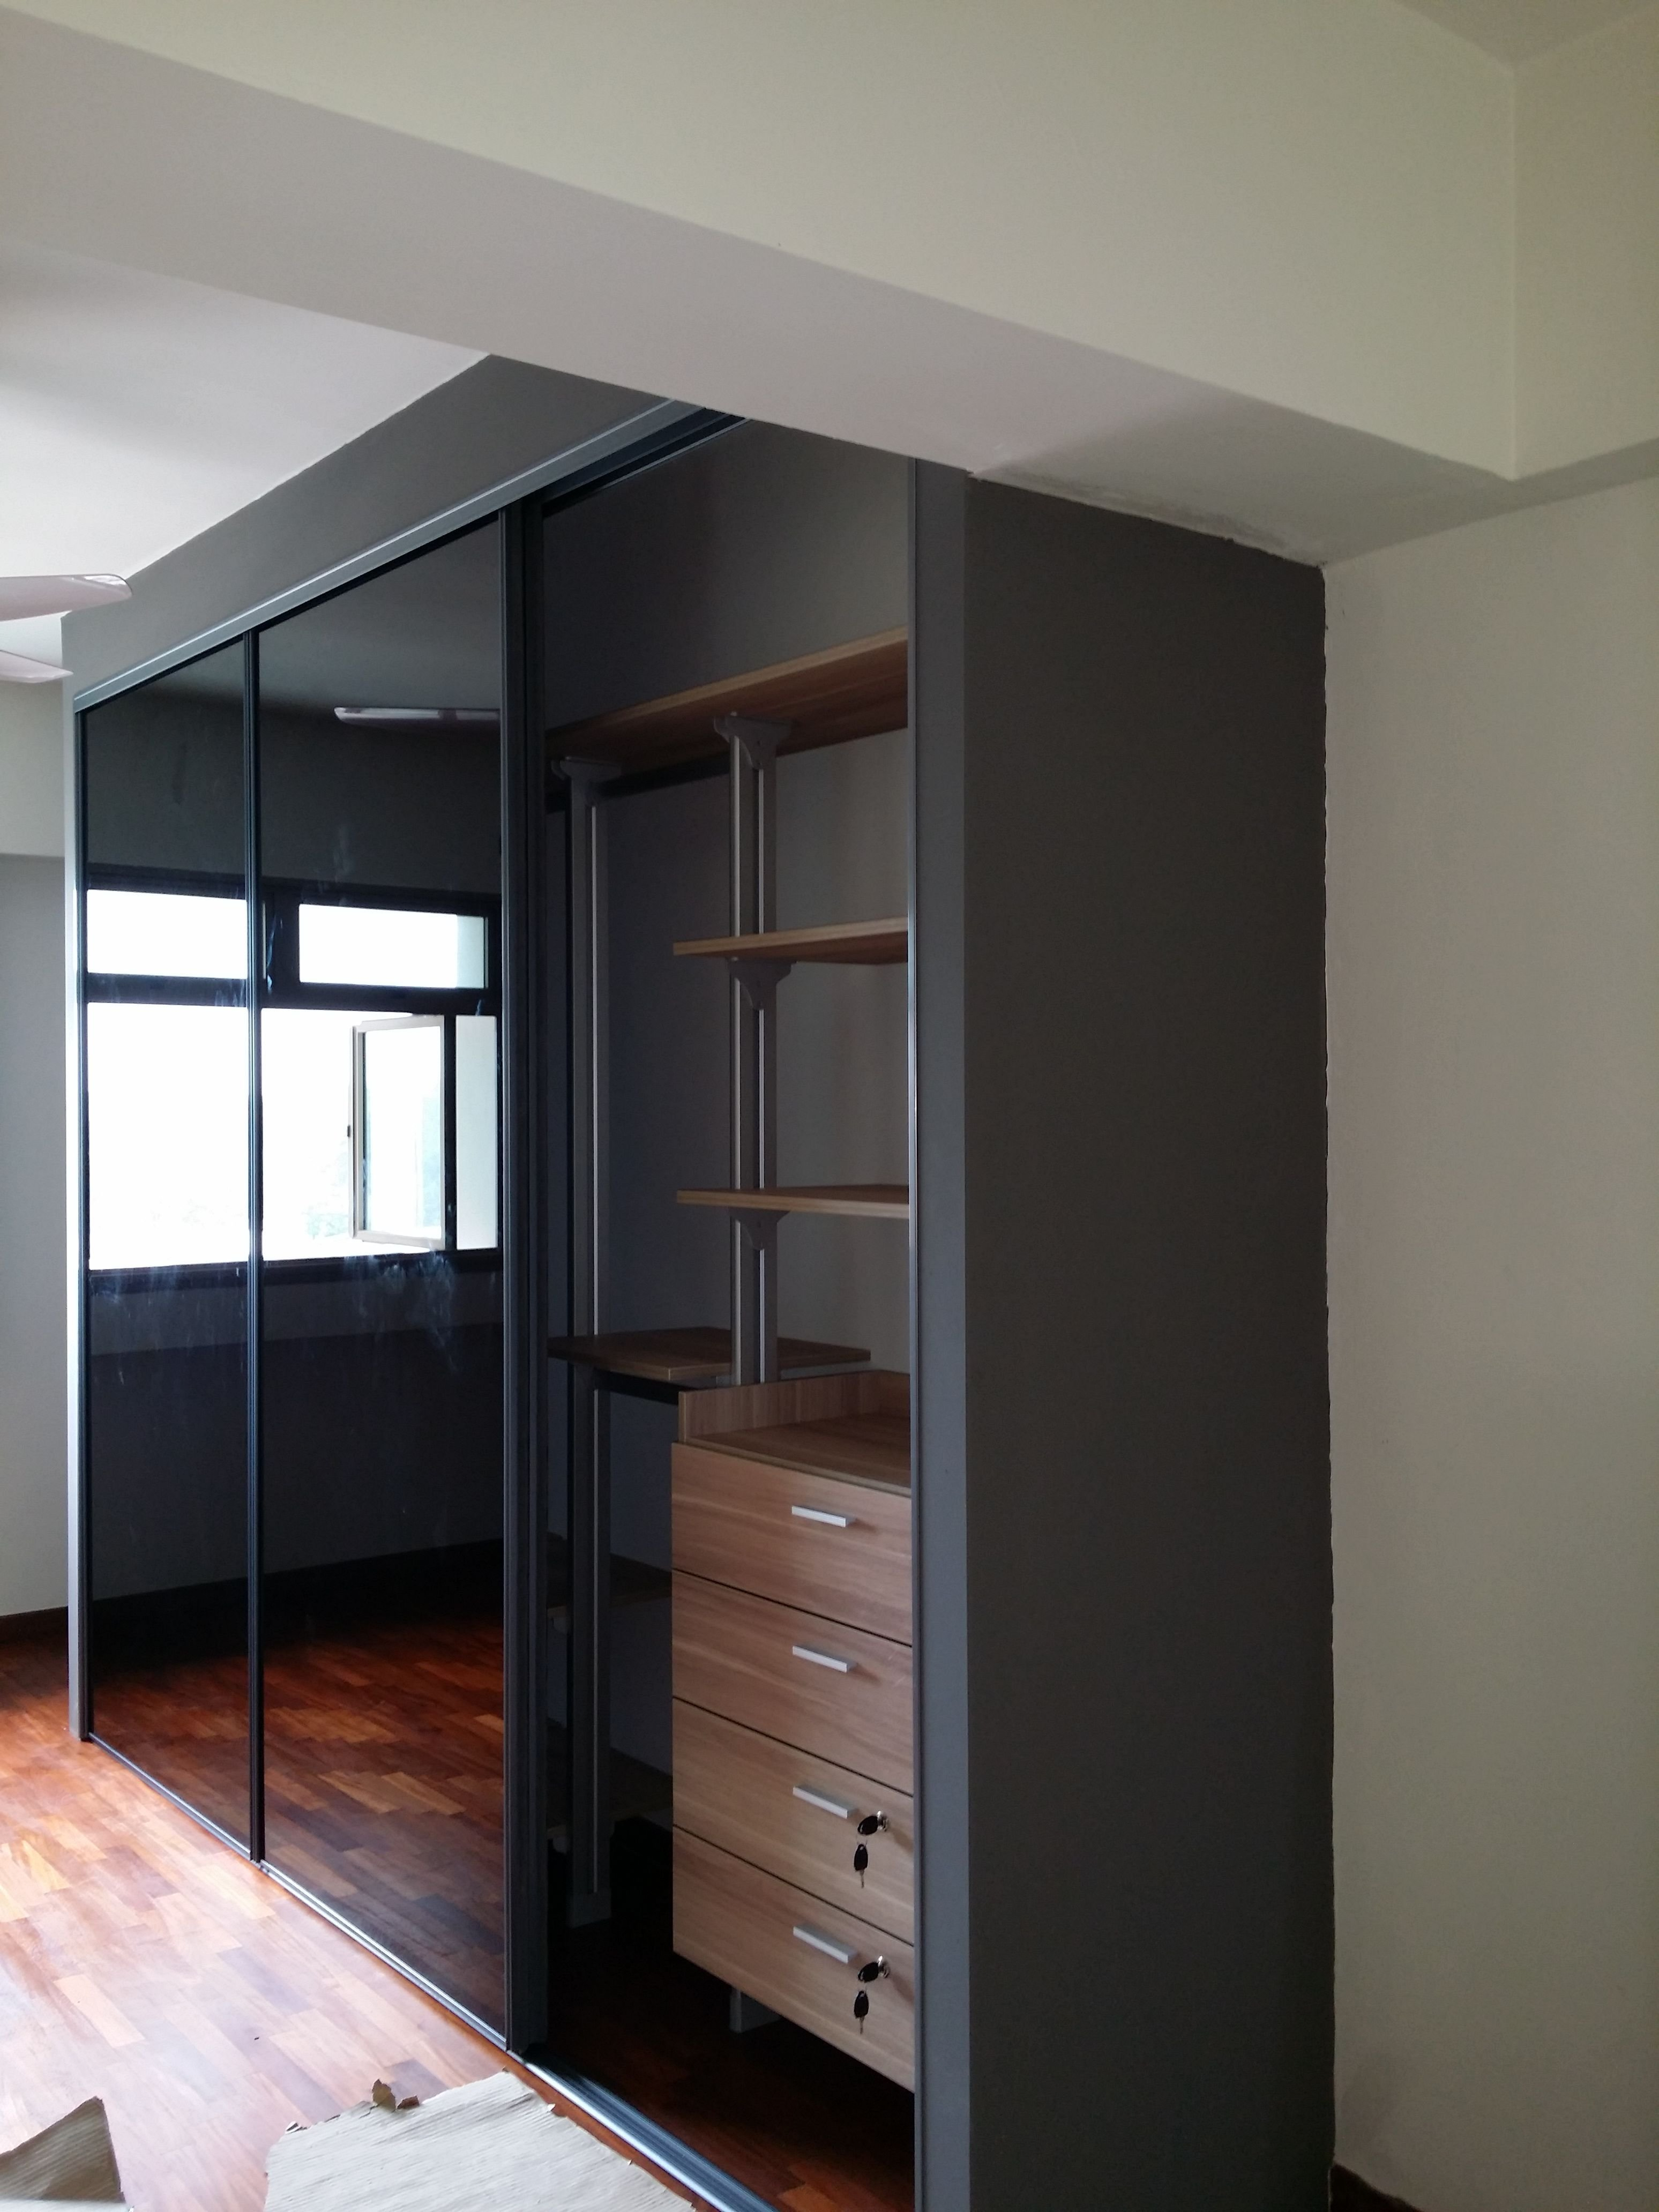 Best Modular Pole System Wardrobe 160B Punggol Central Pinterest Modular Wardrobes Closet With Pictures